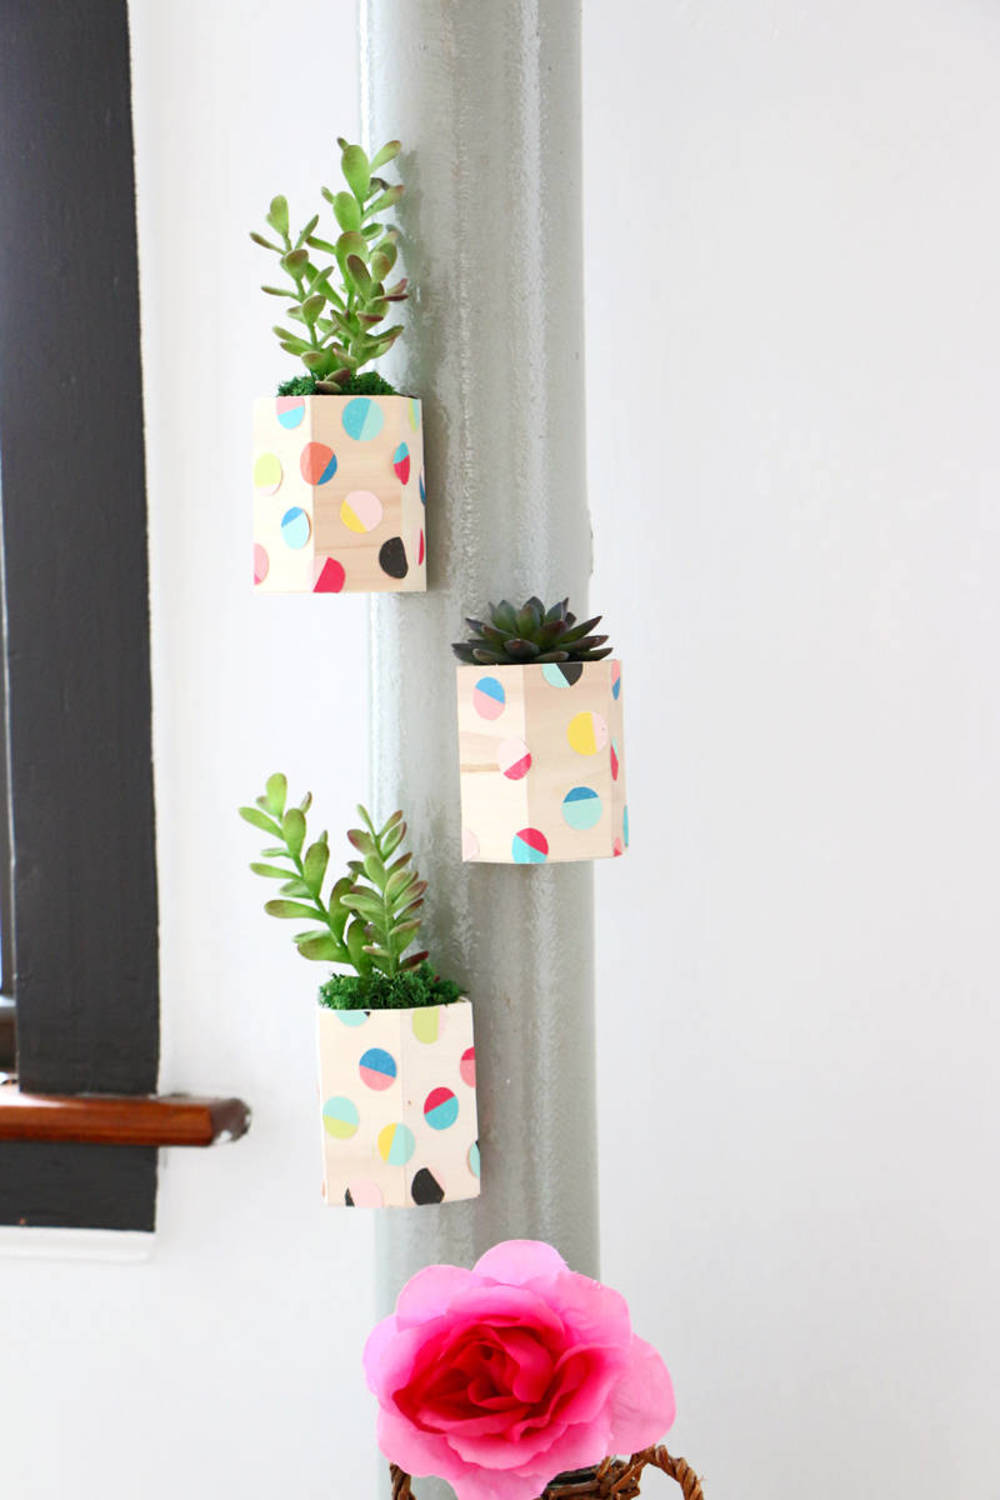 DIY magnetic hexagon planters with colorful paper circles